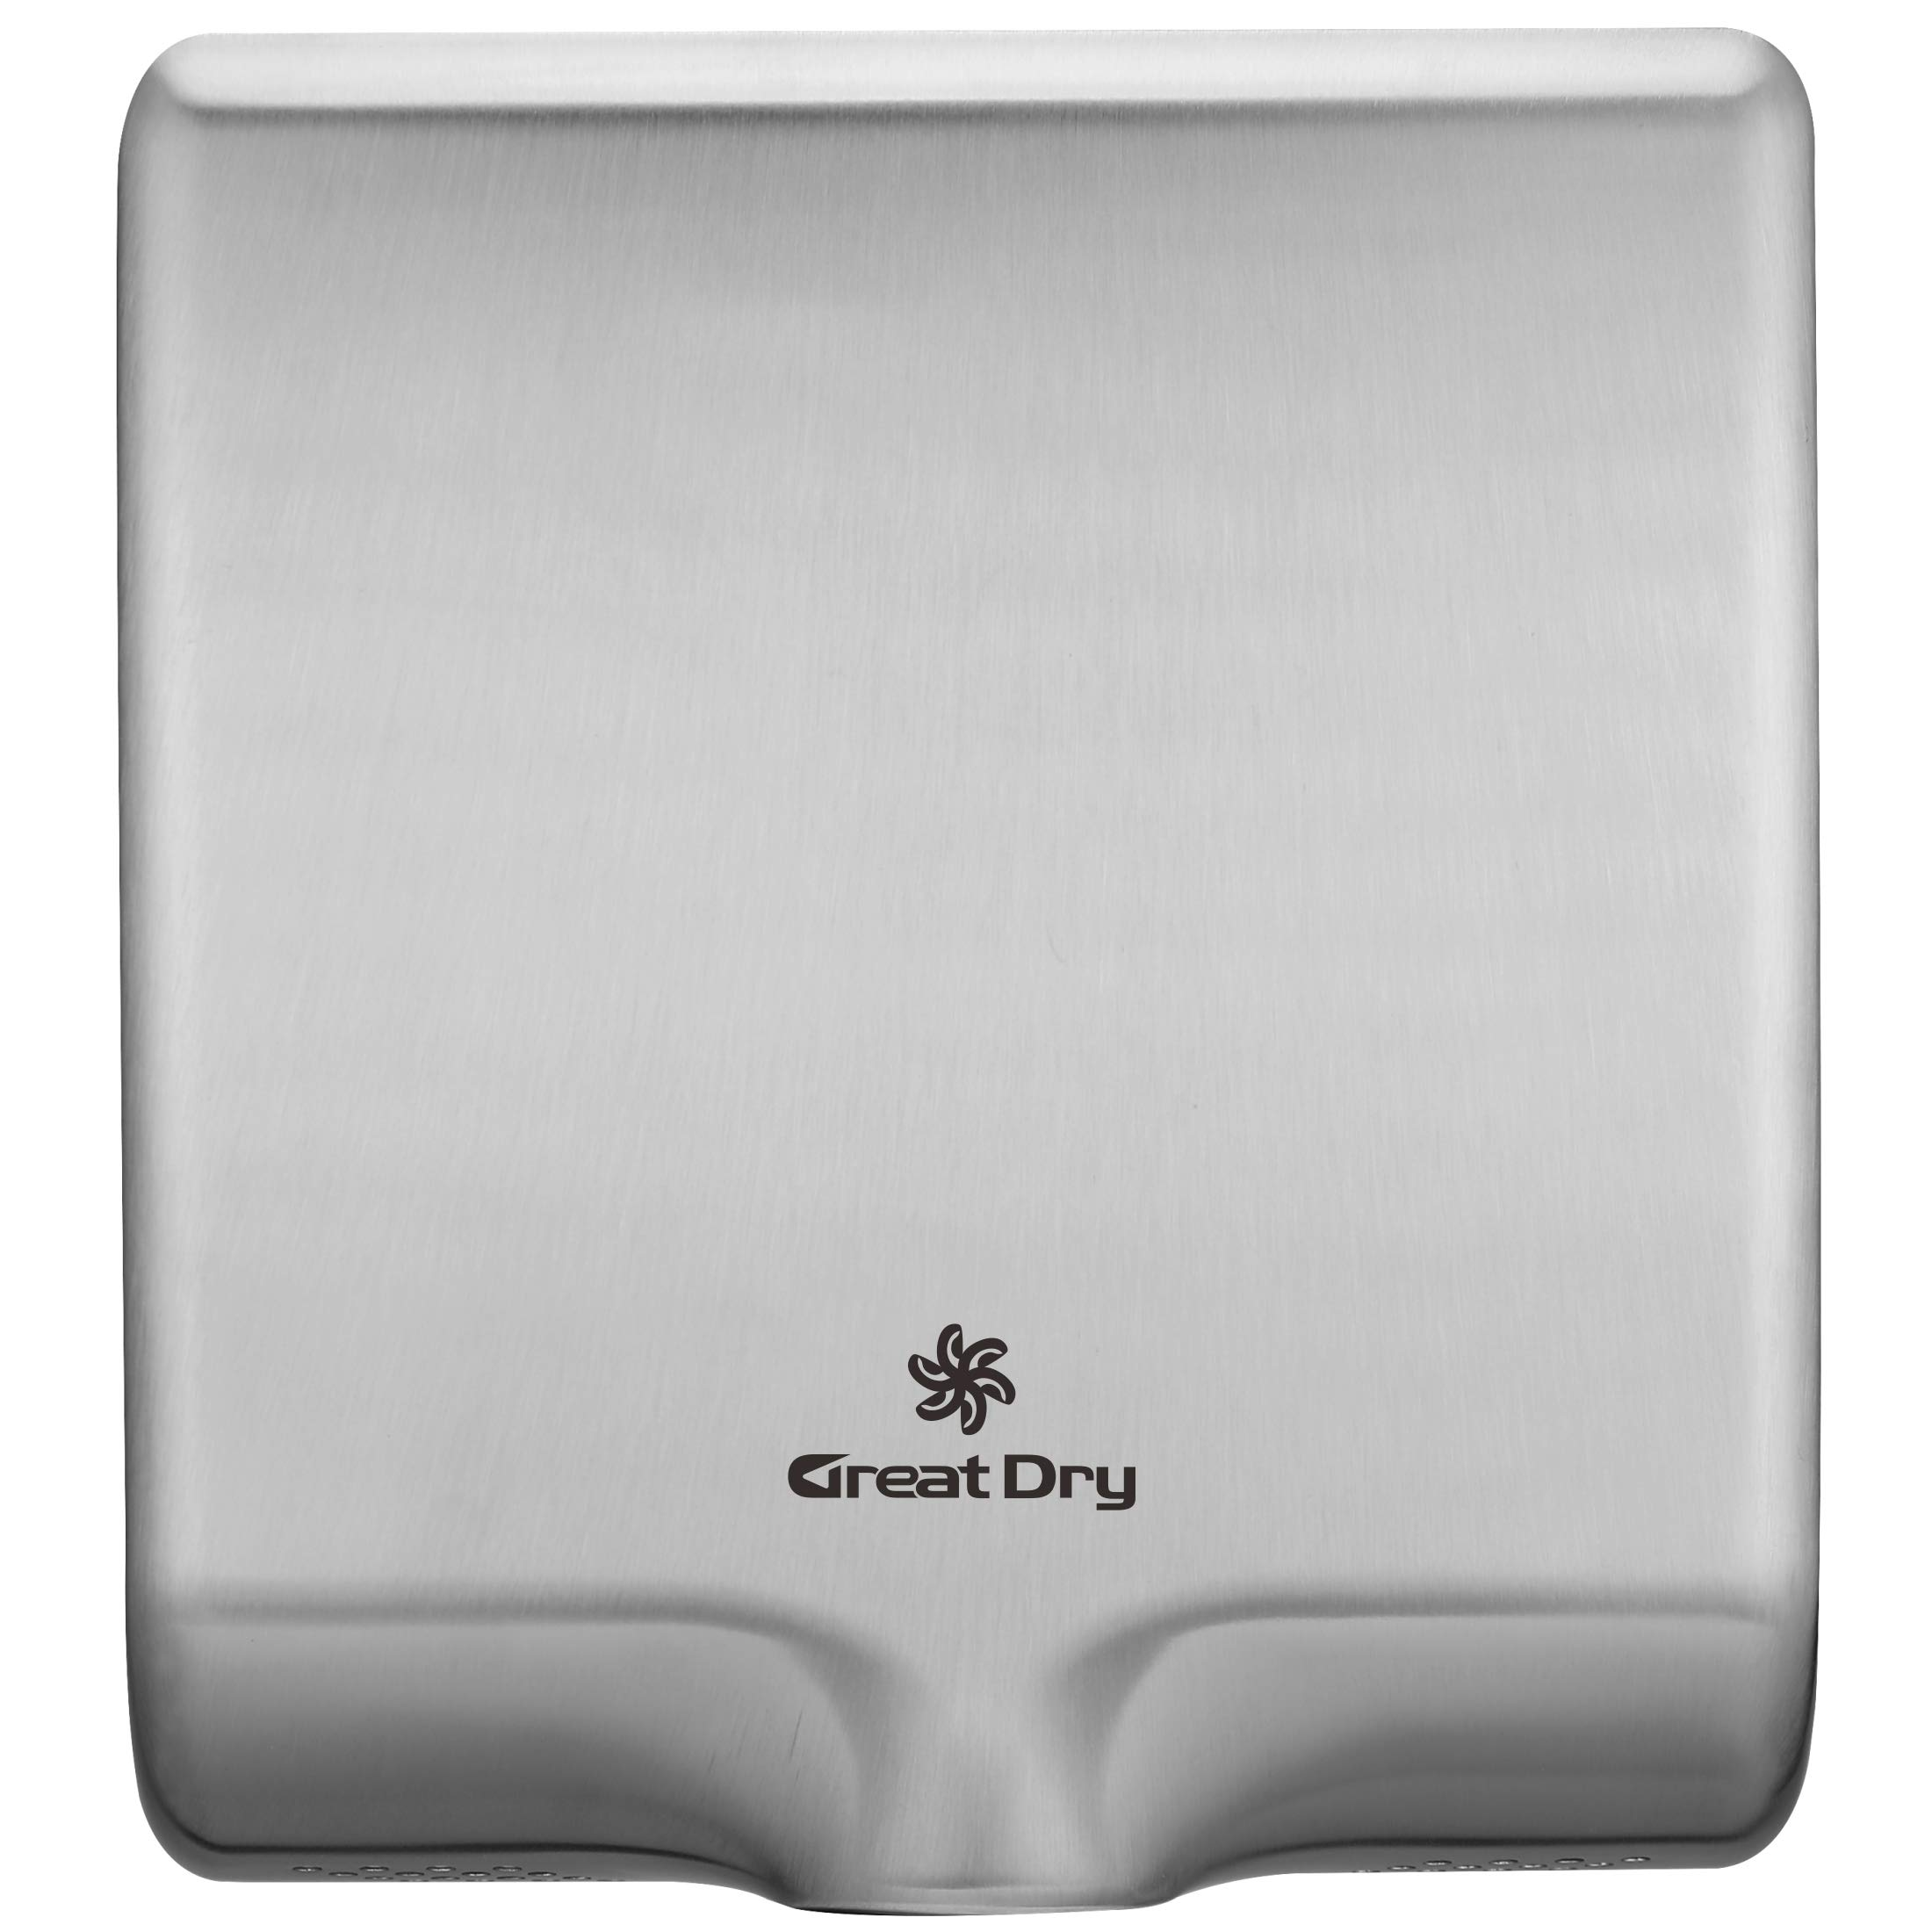 Great Dry Super Slim Commercial Automatic Air Hand Dryer High Speed Heavy Duty 1000W Industrial Hands Dryer Stainless Steel Shell, Low Noise, Easy Installation (Brushed Stainless Steel) by Great Dry